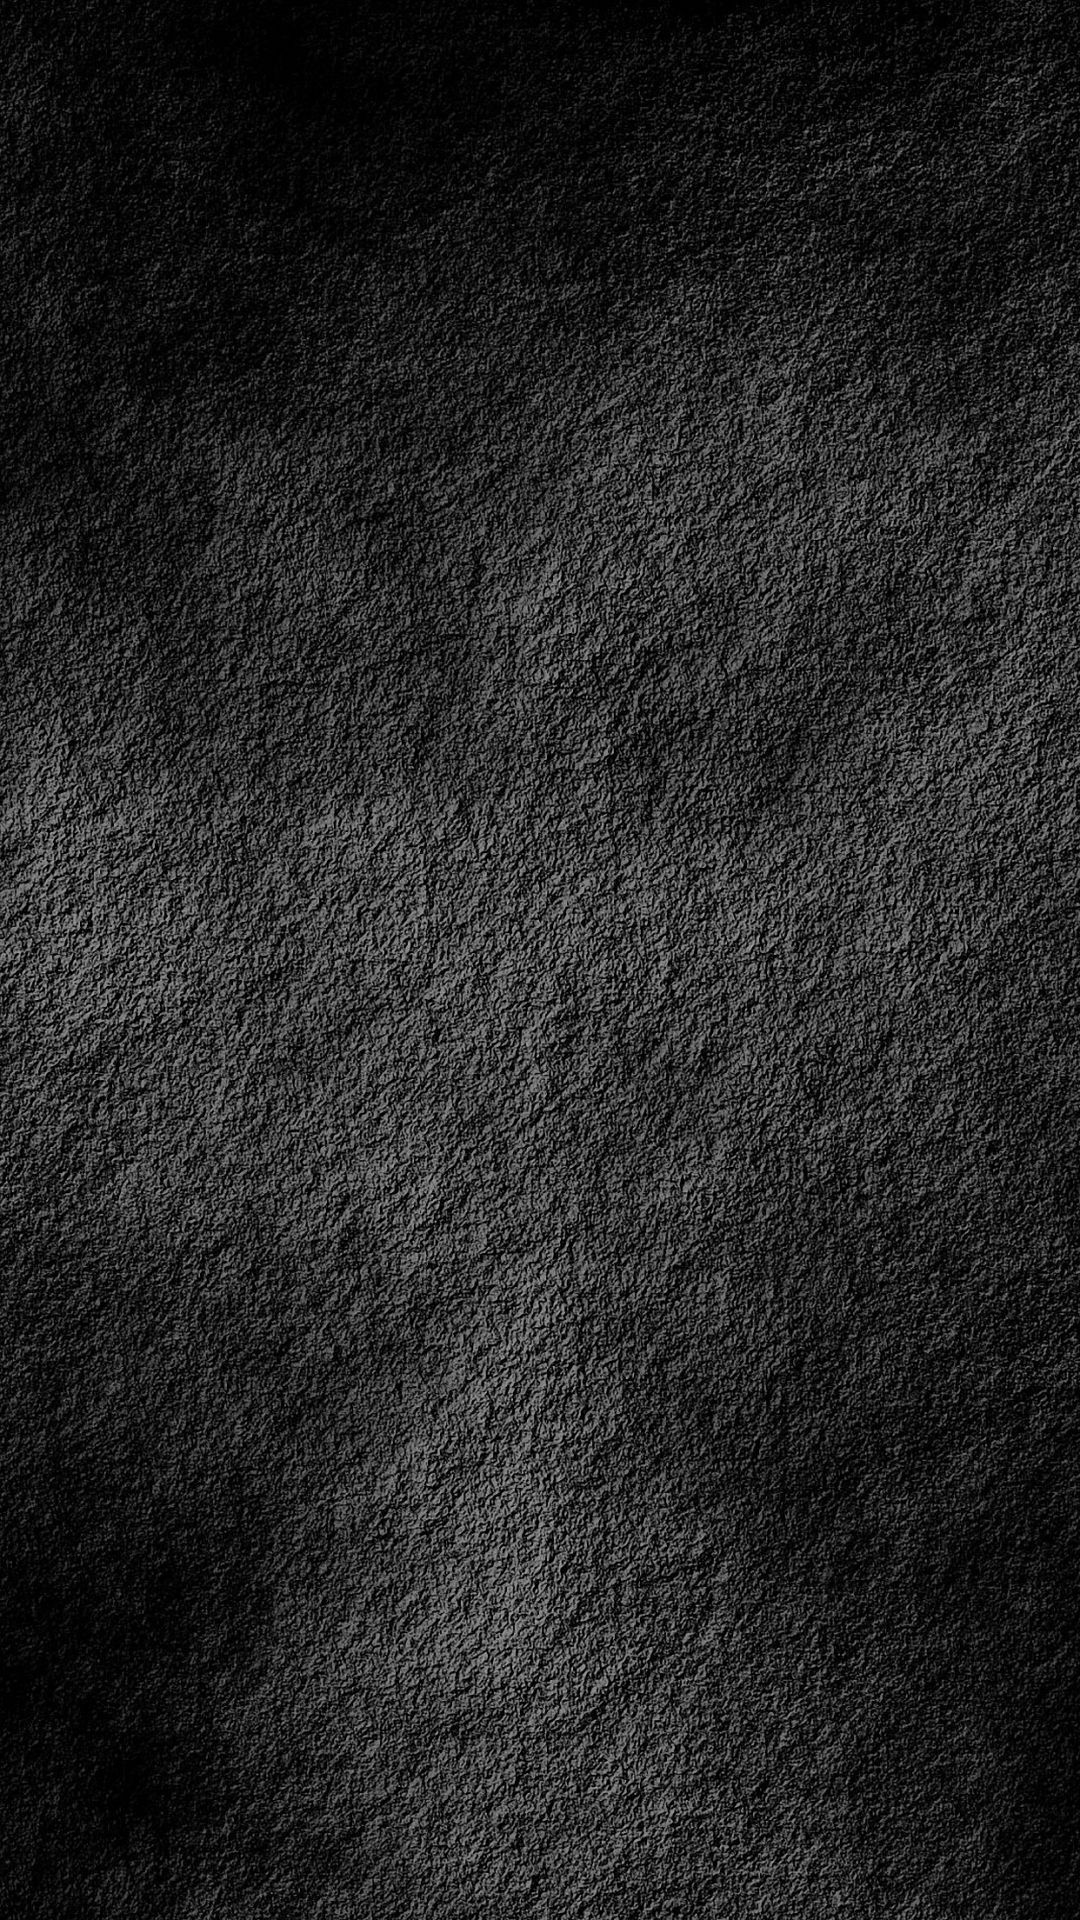 Abstract Black And Gray Background Image Background Hd Wallpaper Cellphone Wallpaper Hd Wallpaper Iphone